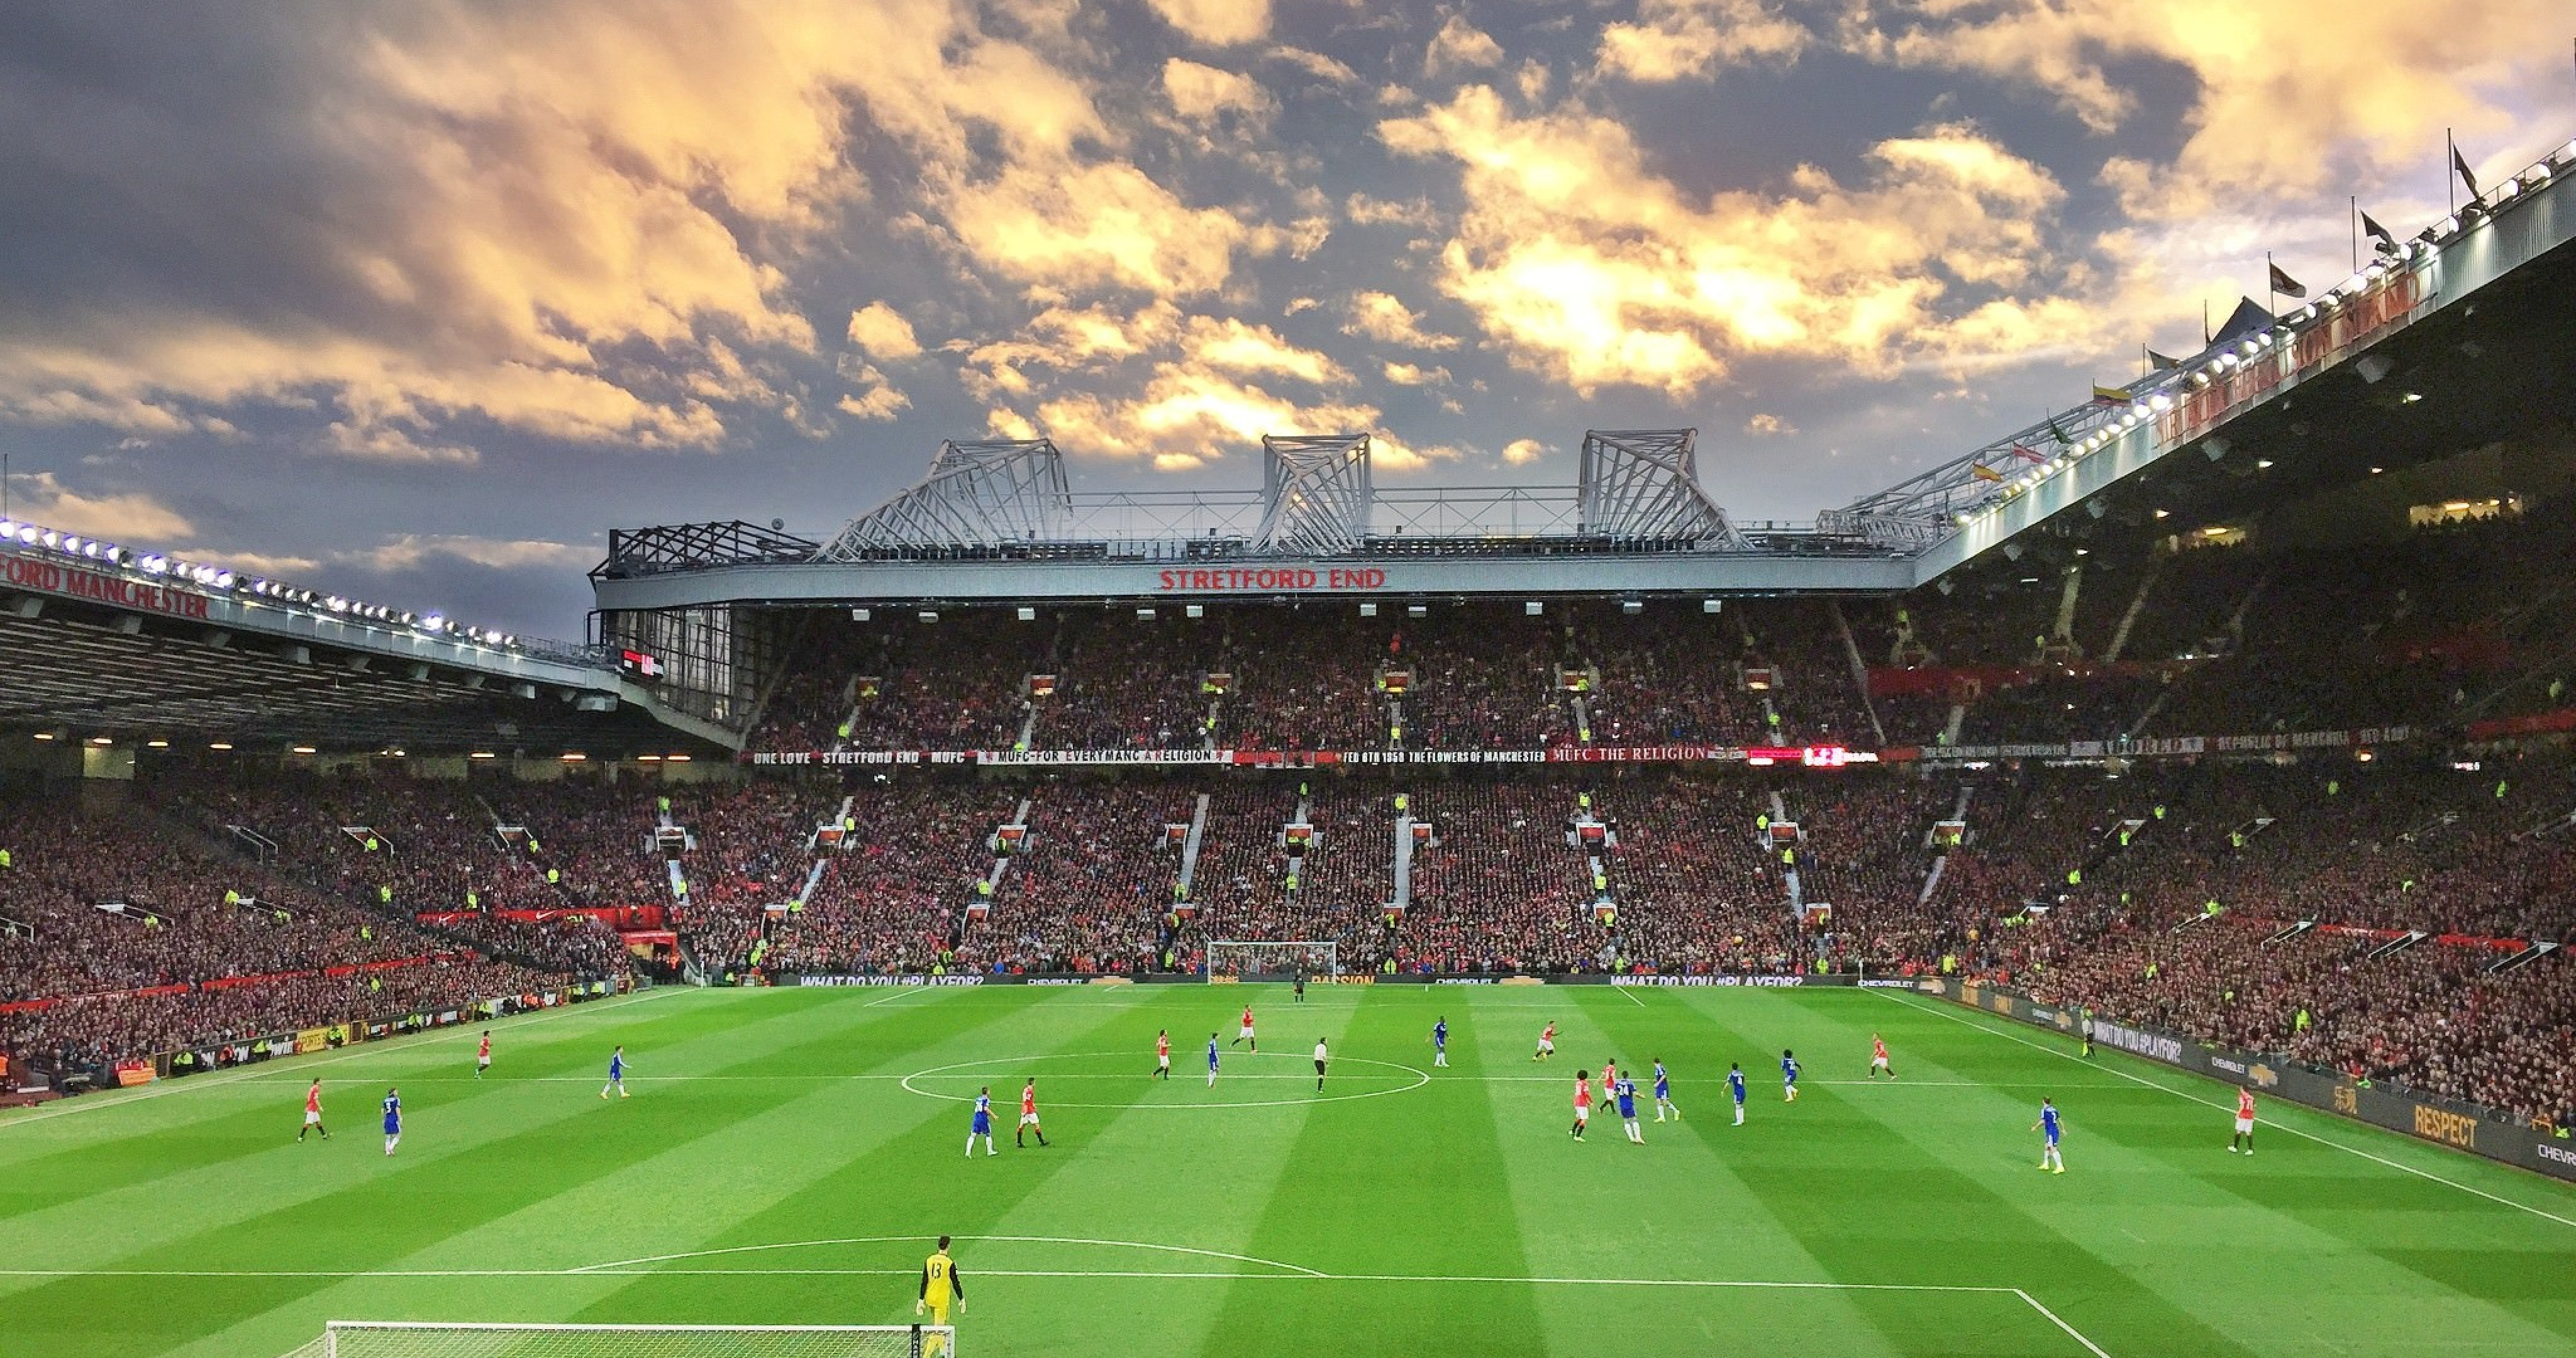 Best Of Manchester United Ultra Hd Wallpaper Great Foofball Club 4096x2160